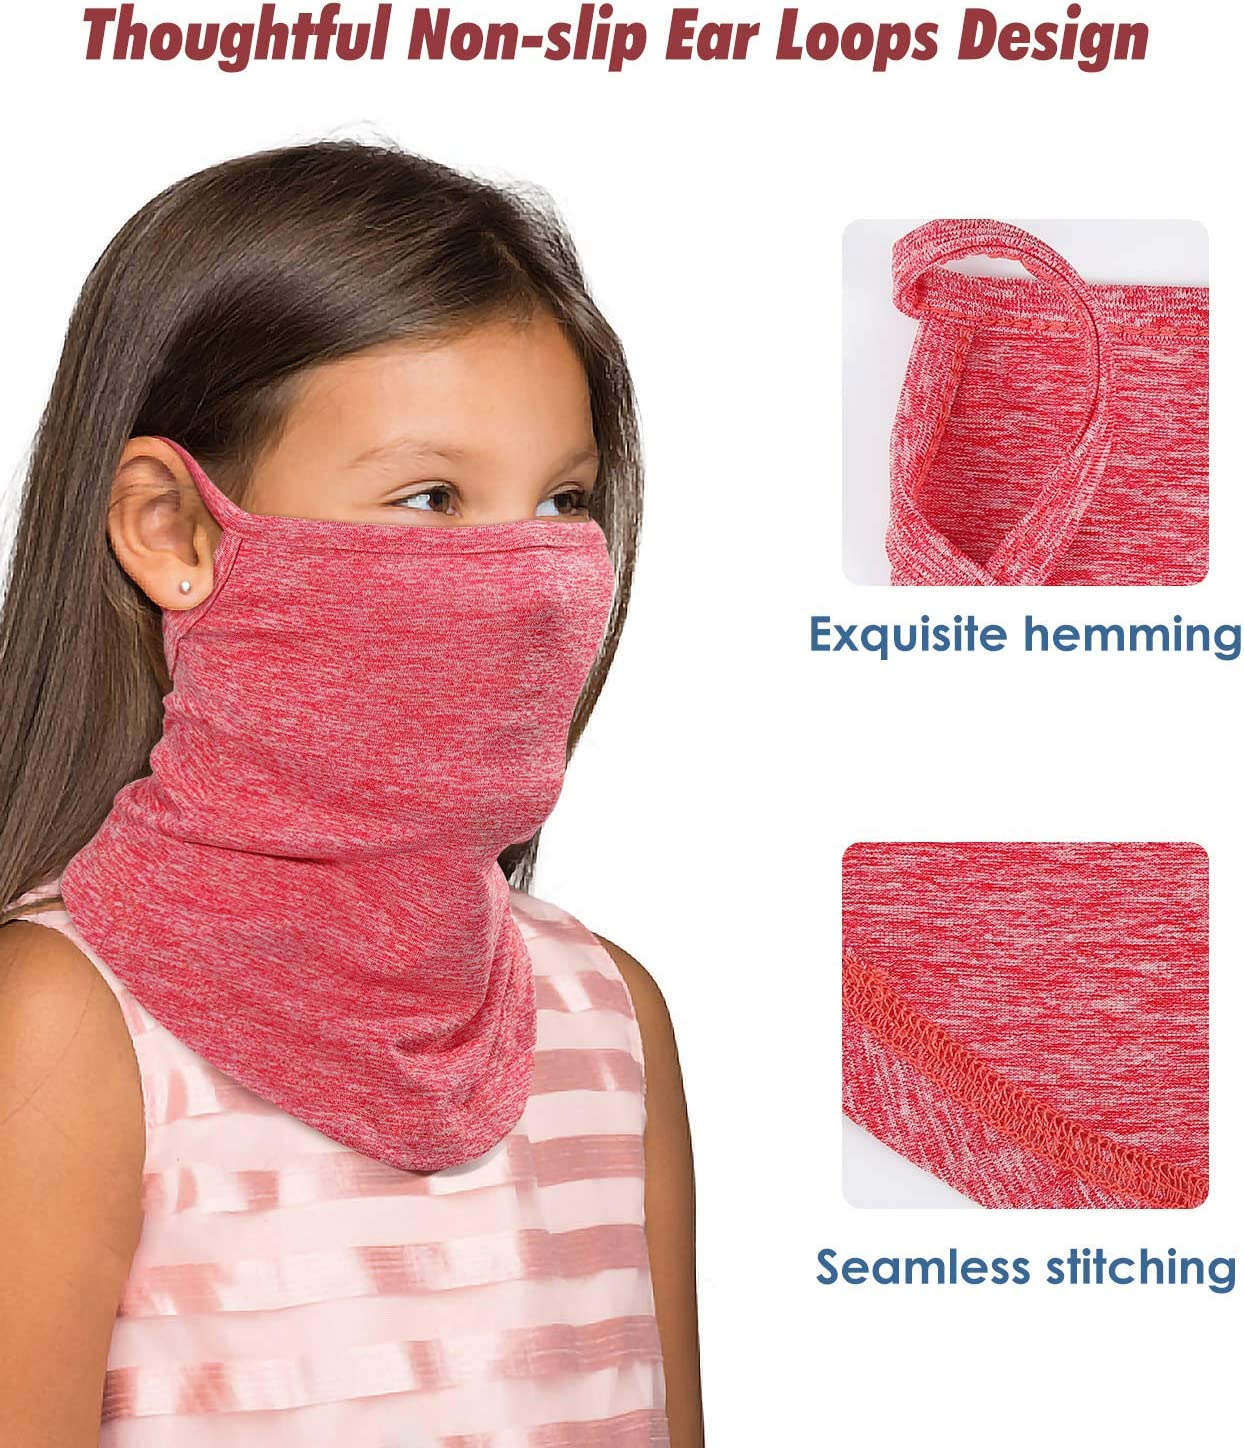 Rhino Valley Face Bandana for Kids, Face Cover Neck Gaiter with Ear Loops,Summer Outdoor Sport Sun Protection Breathable Headband Face Scarf Bandanas for Boys and Girls 3 Pack